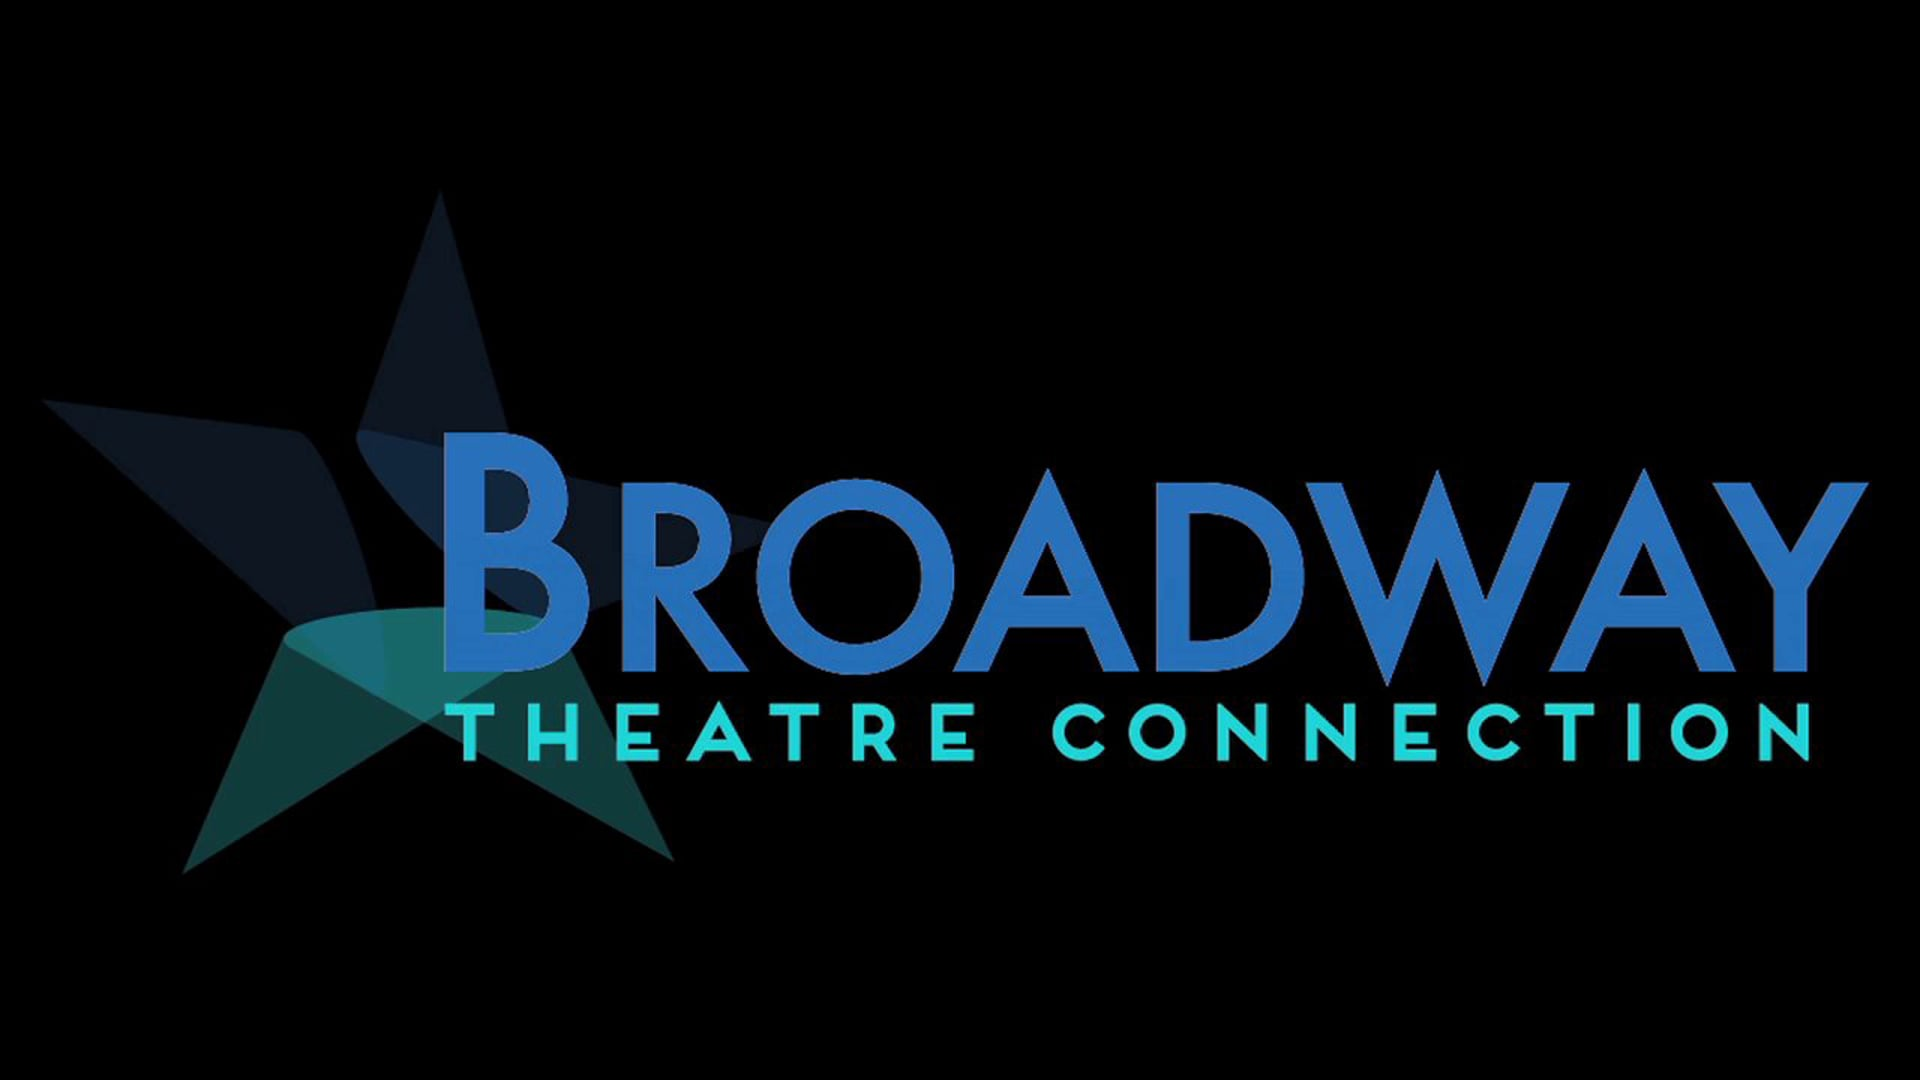 Broadway Theatre Connection - 2013